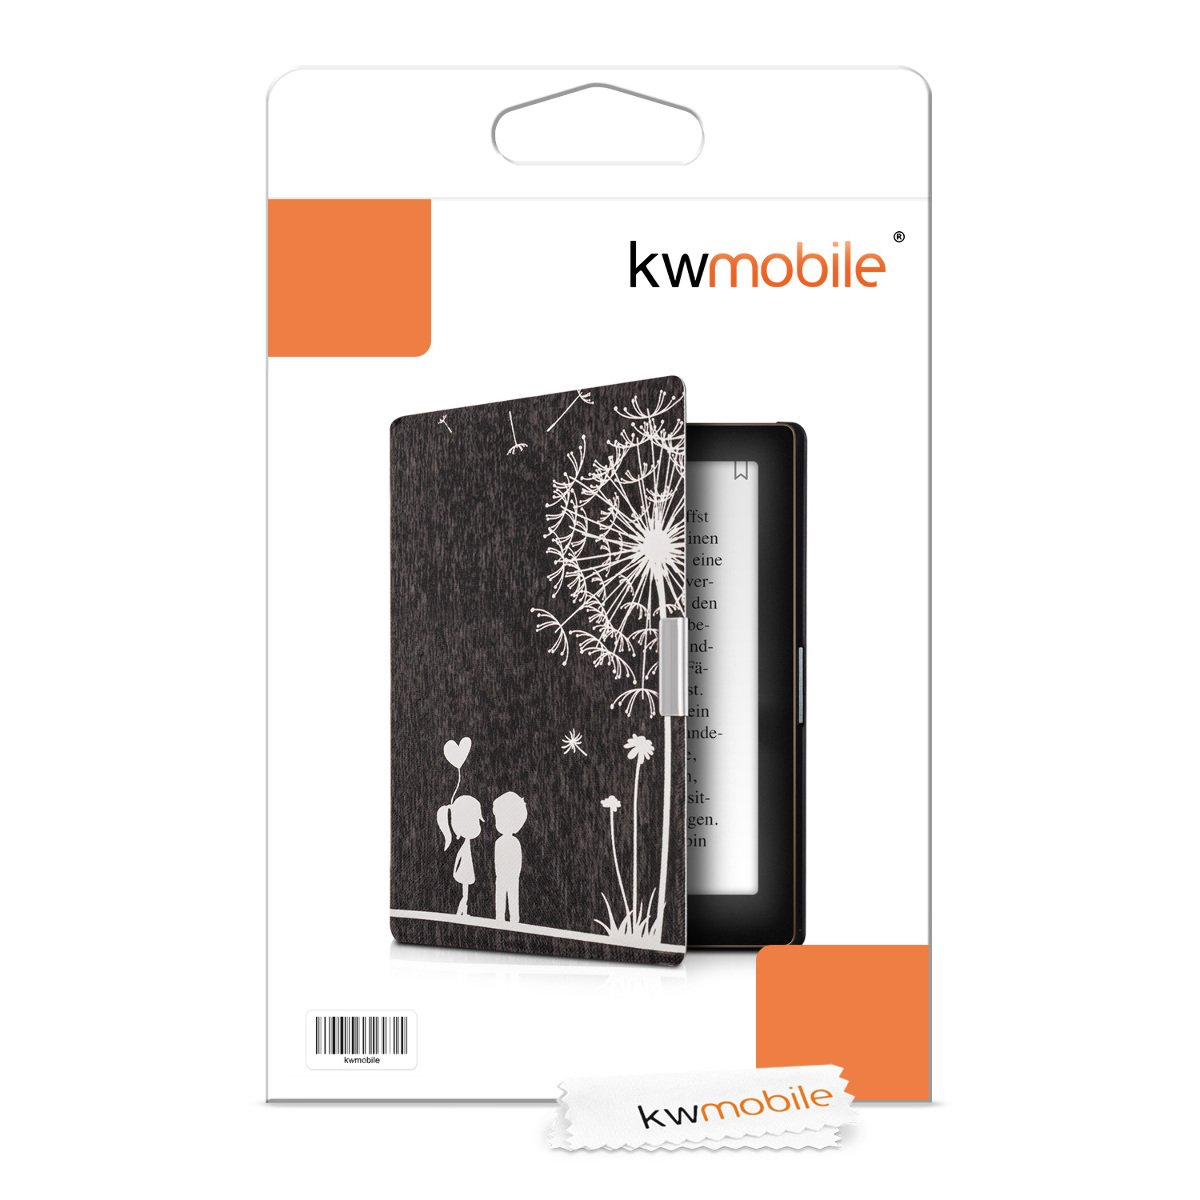 kwmobile Case for Kobo Aura Edition 1 - Book Style PU Leather Protective e-Reader Cover Folio Case - white black by kwmobile (Image #8)